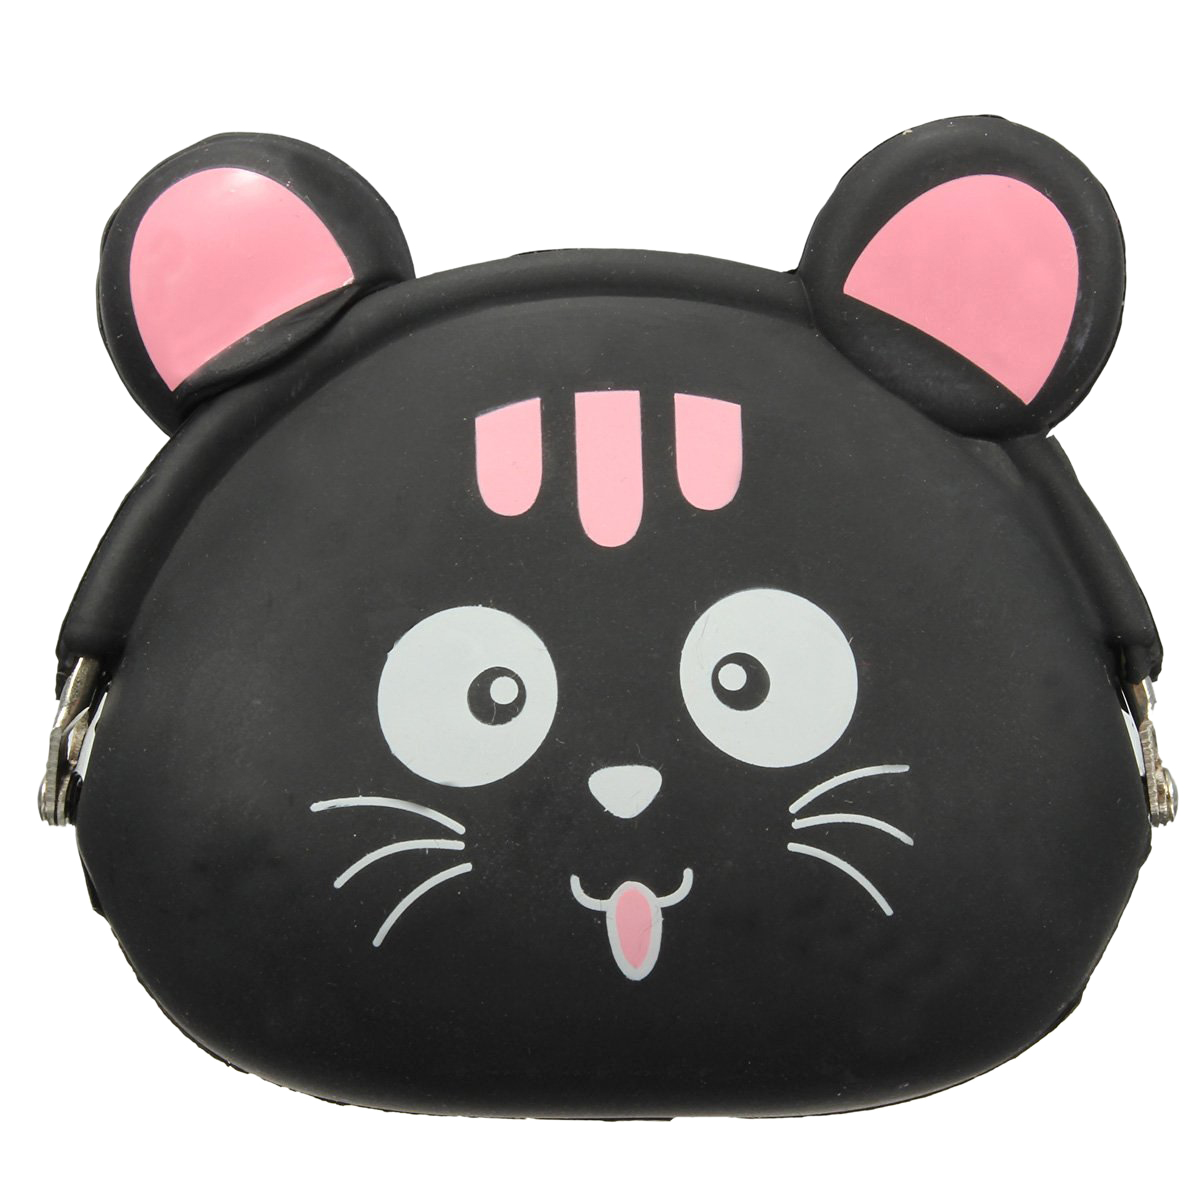 ASDS-Women Girls Wallet Kawaii Cute Cartoon Animal Silicone Jelly Coin Bag Purse Kids Gift Black cat lps pet shop toys rare black little cat blue eyes animal models patrulla canina action figures kids toys gift cat free shipping